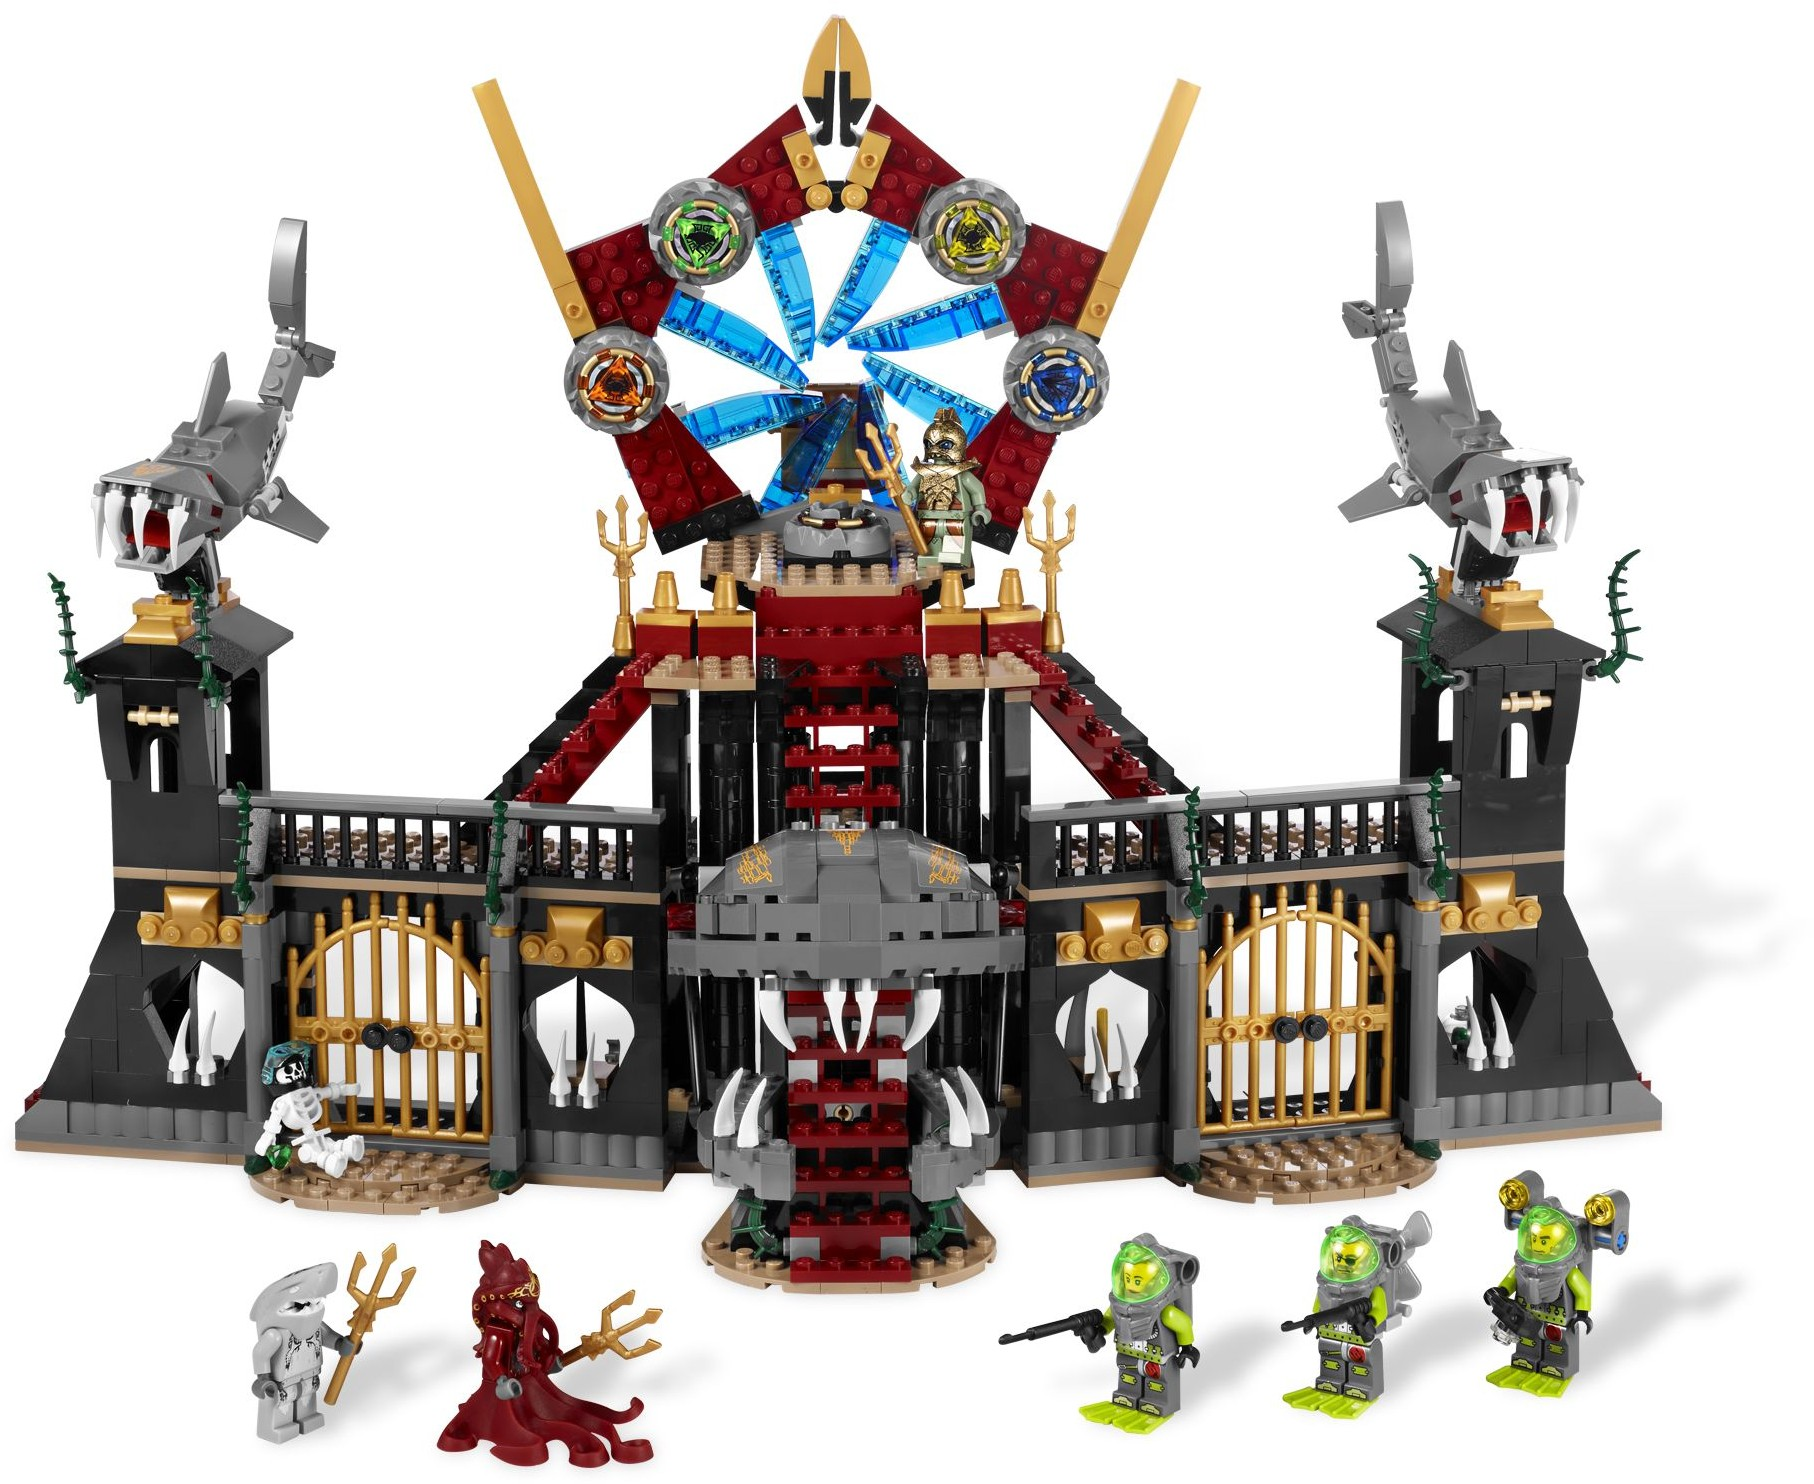 Tagged Portal Brickset Lego Set Guide And Database 21124 Minecraft The End Of Atlantis